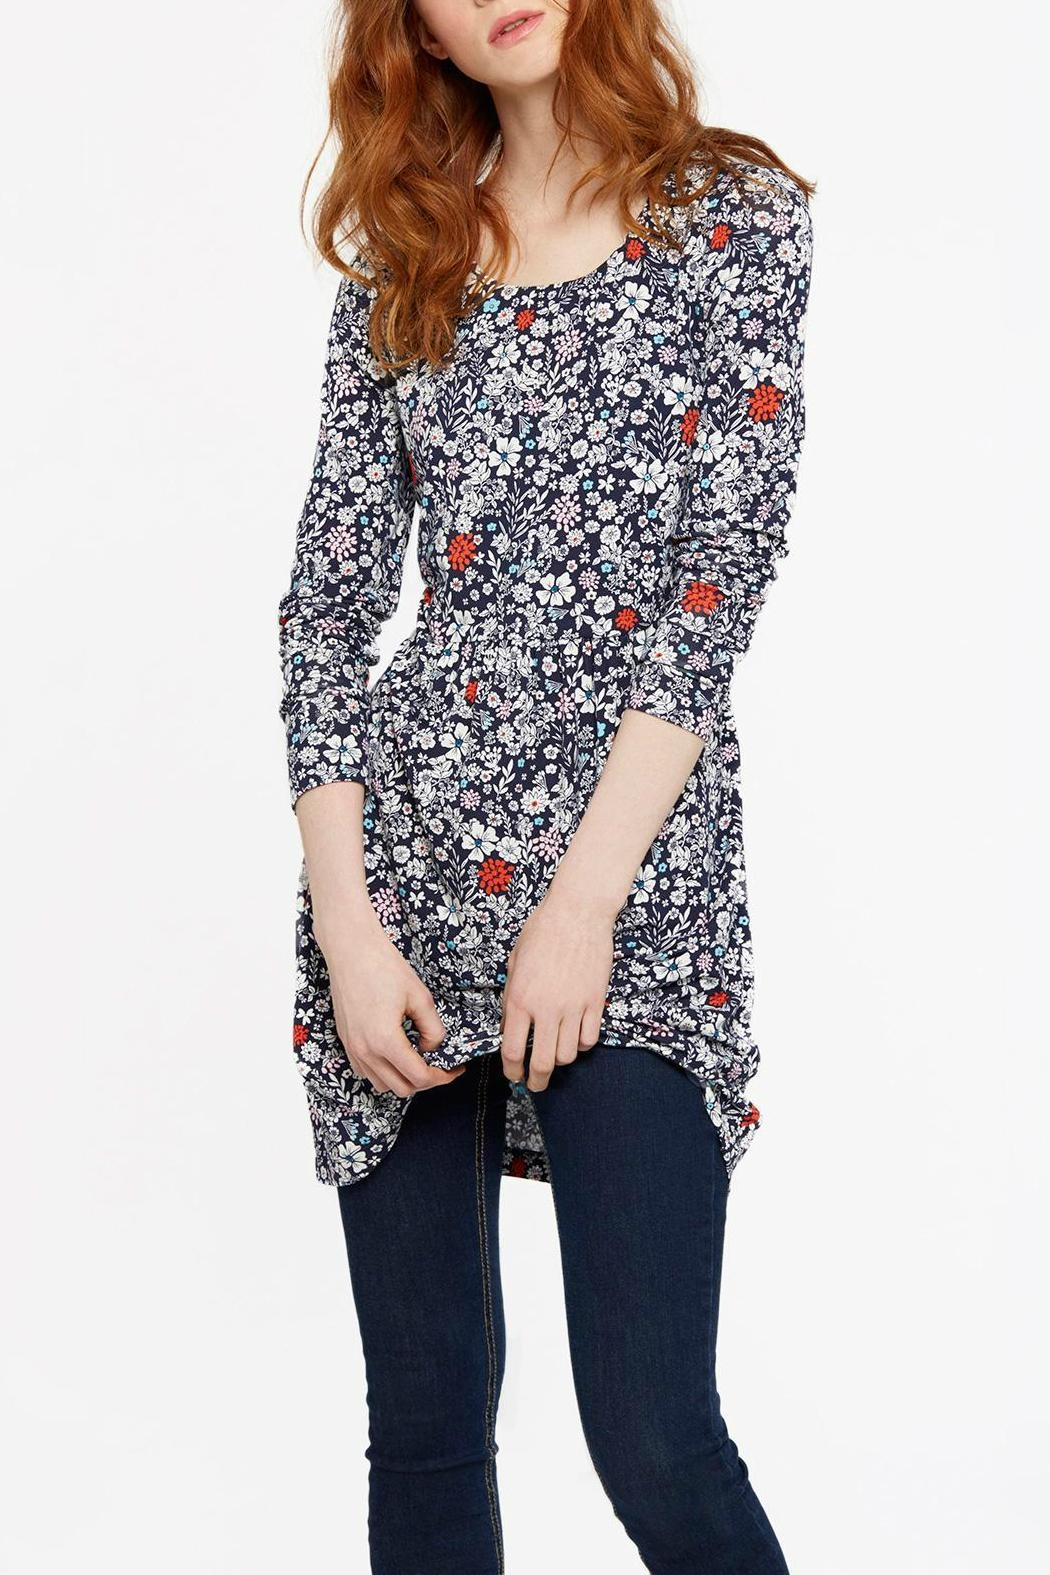 Joules Printed Jersey Tunic Top - Main Image